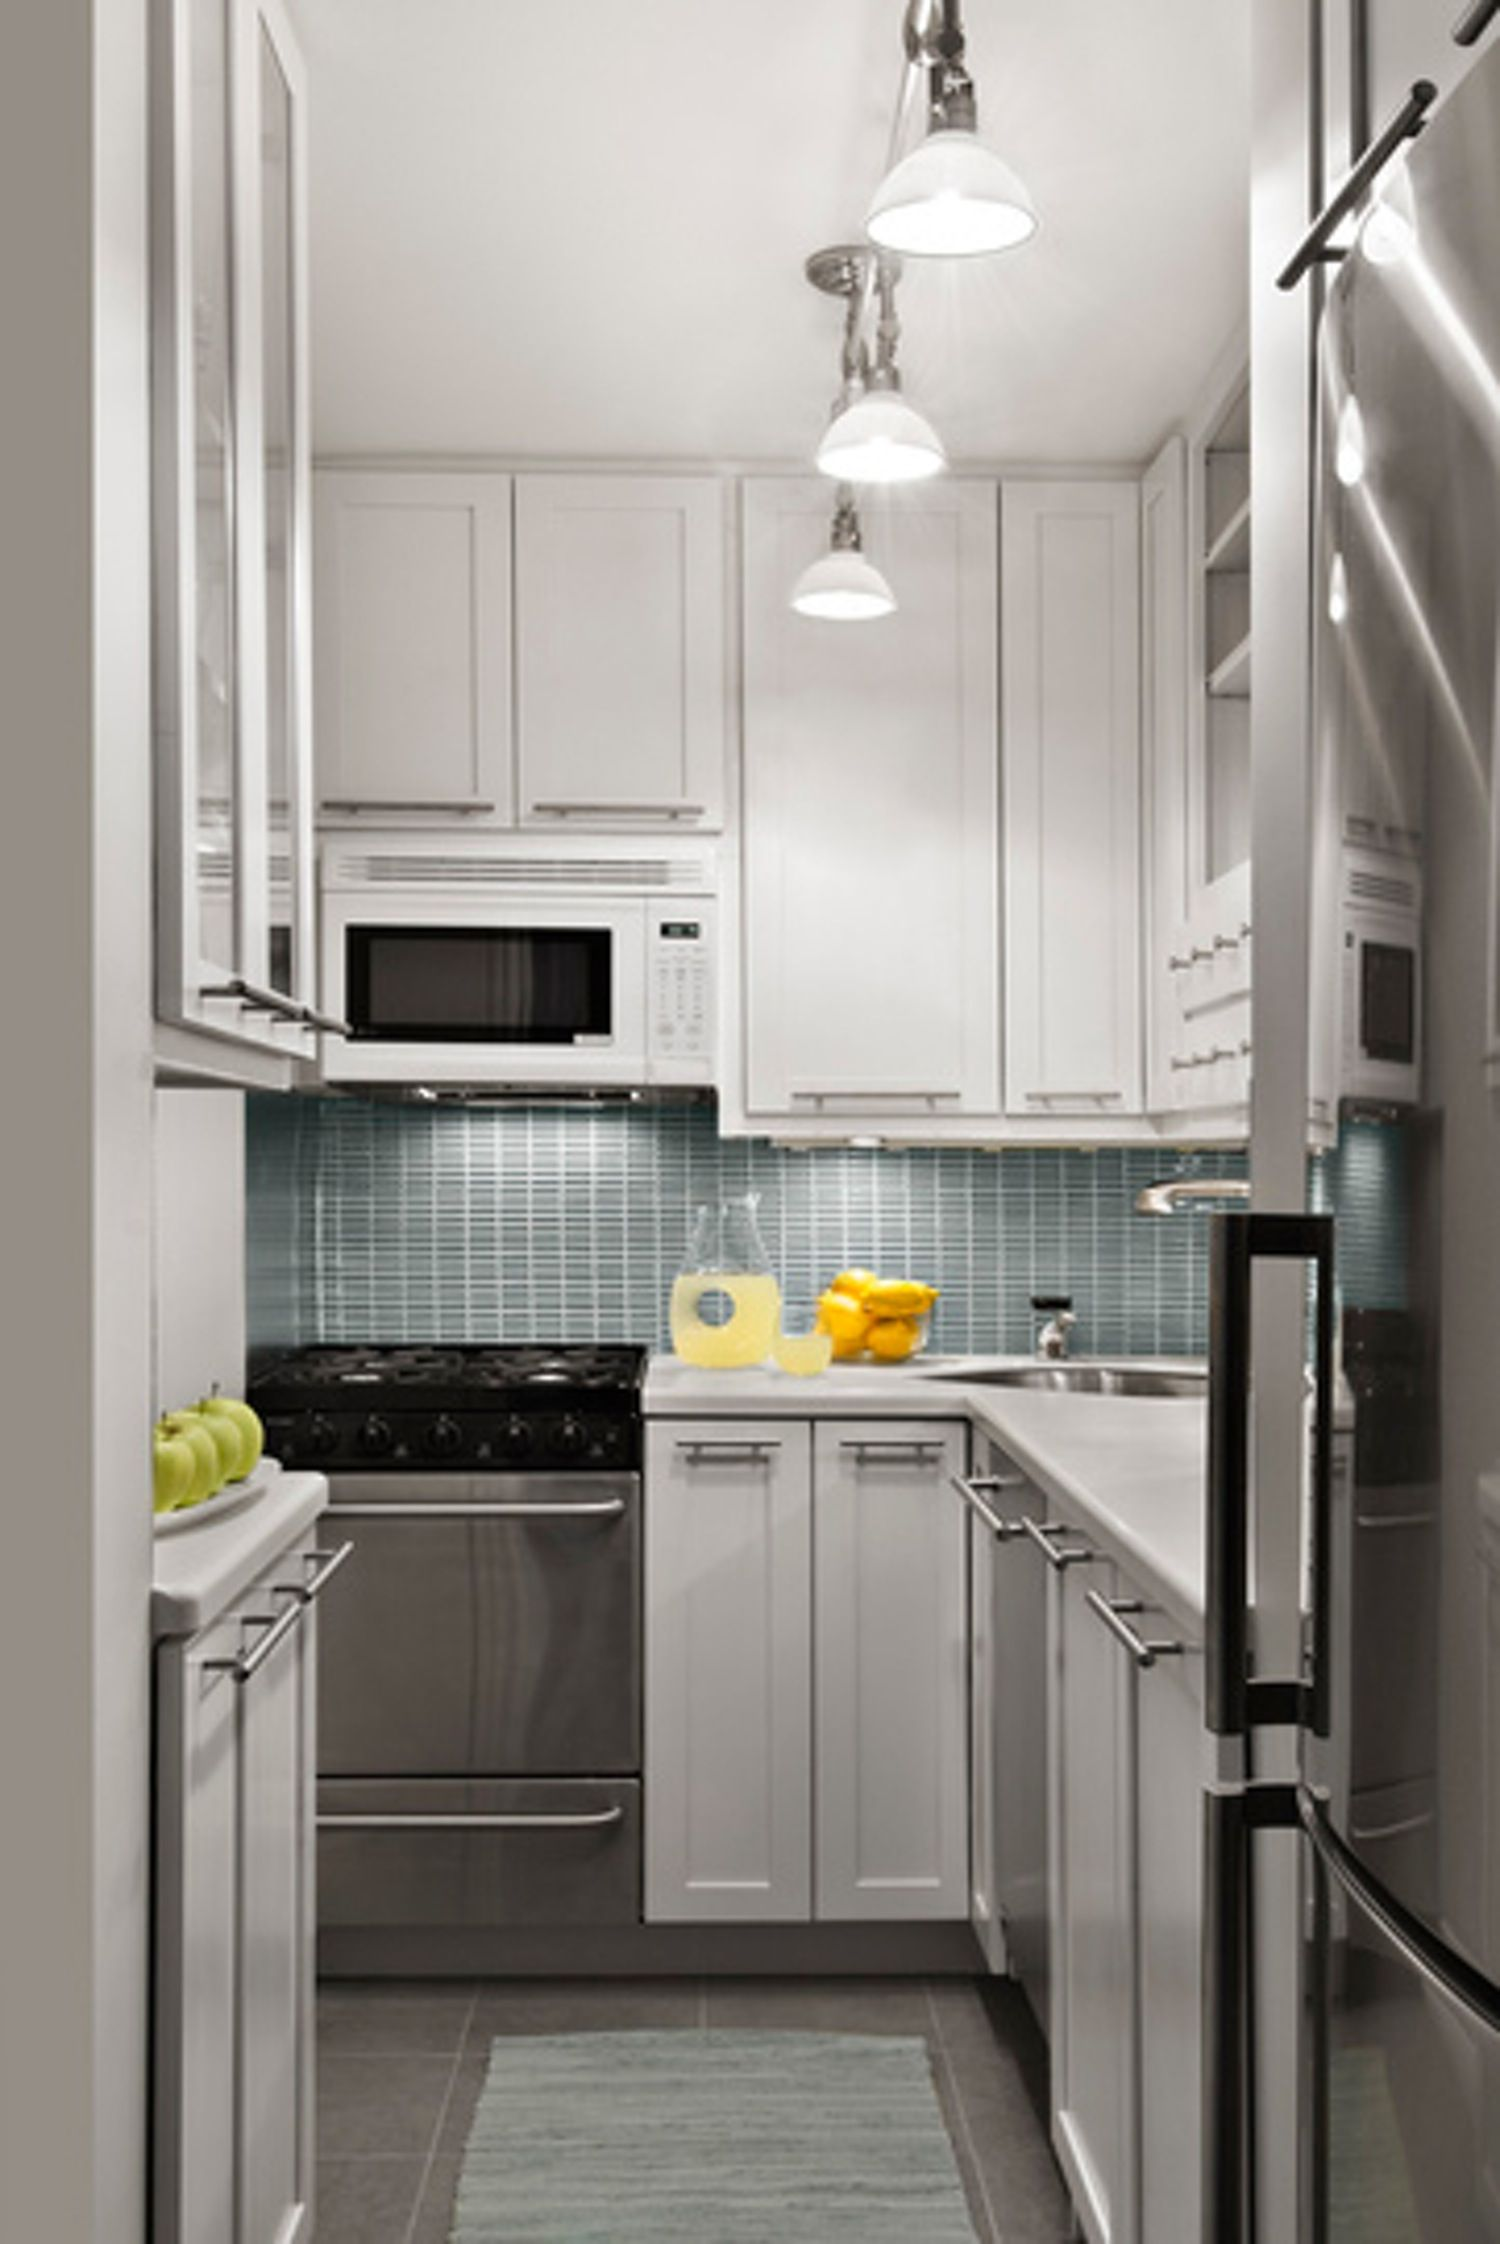 10 Well-Designed Windowless Kitchens | Kitchens, Natural light and ...